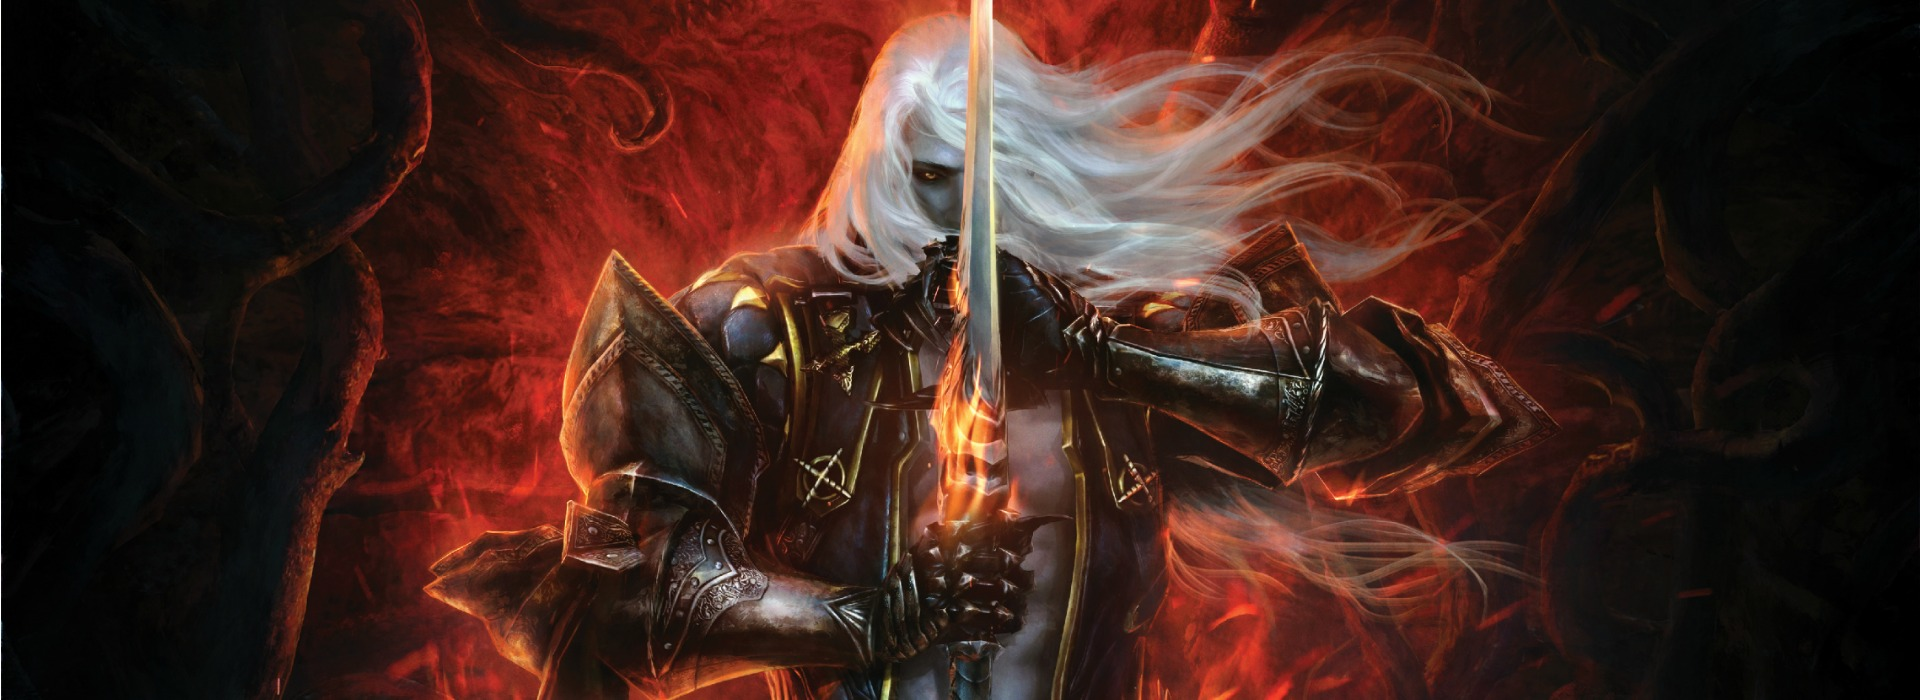 castlevania-lords-of-shadow-mirror-of-fate-banner